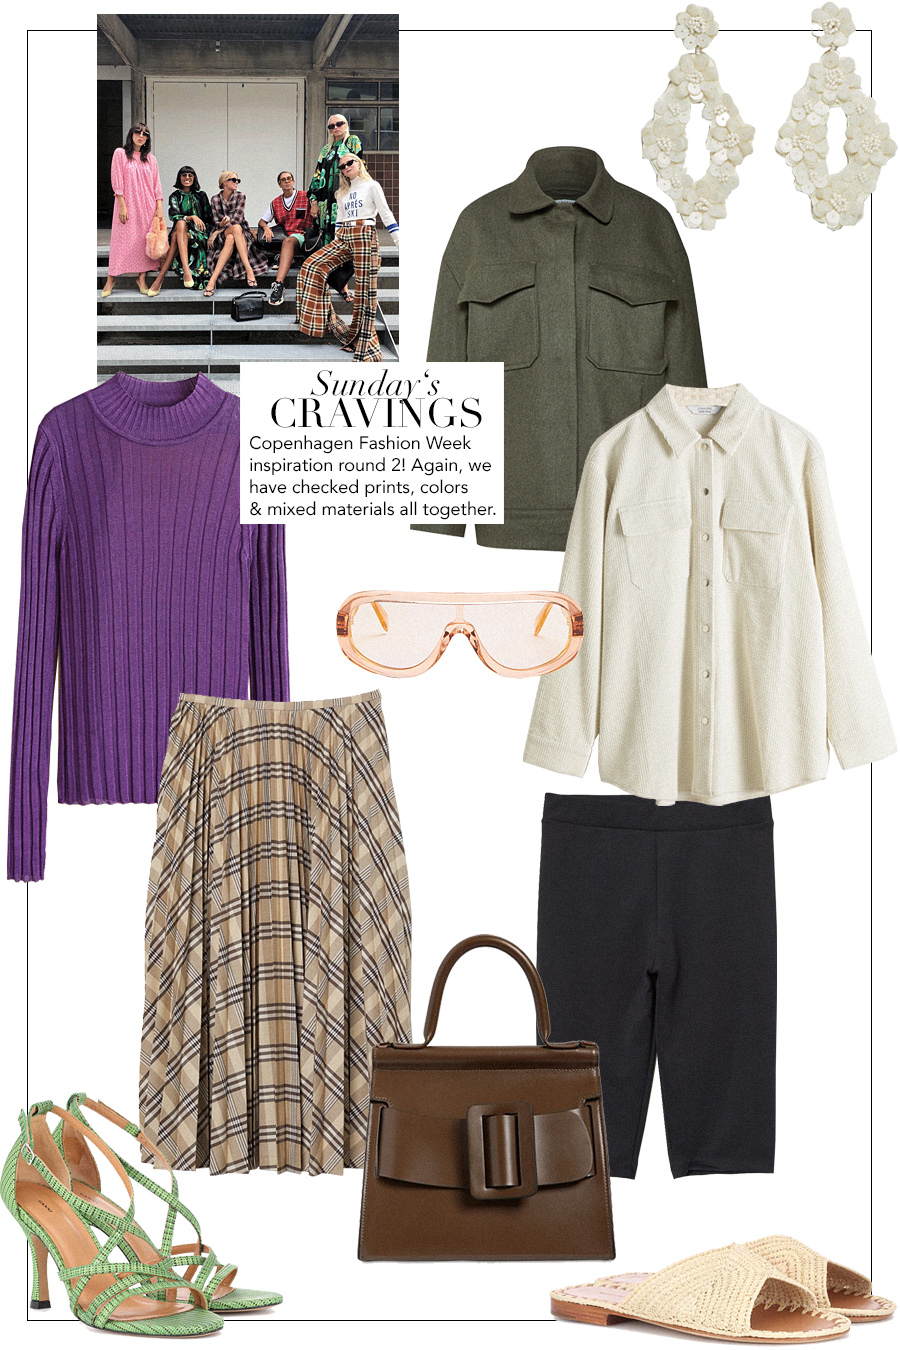 Sunday's Cravings: Céline Mask sunglasses, Boyy Karl 24 bag brown, Ganni Wilma green sandals, cycling shorts, Violet longsleeve, Green jacket, Sequin earrings, White Corduroy blouse, Carrie Forbes Raffia sandals